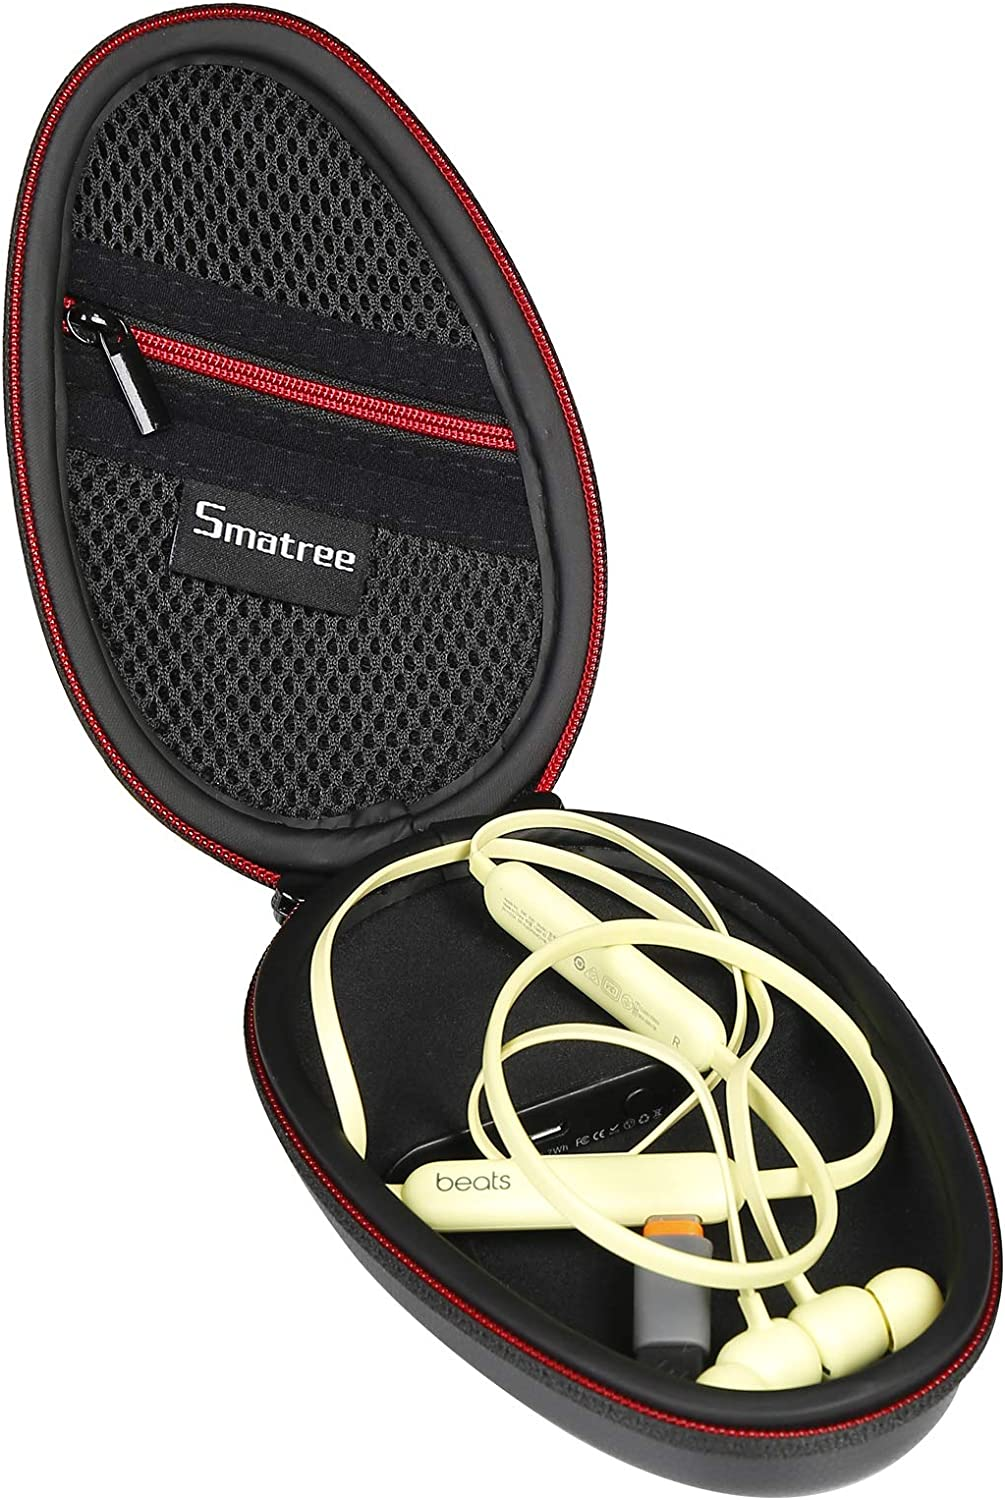 Smatree Charging Case Popular standard Compatible for P Flex Powerbeats Genuine Free Shipping 2 Beats